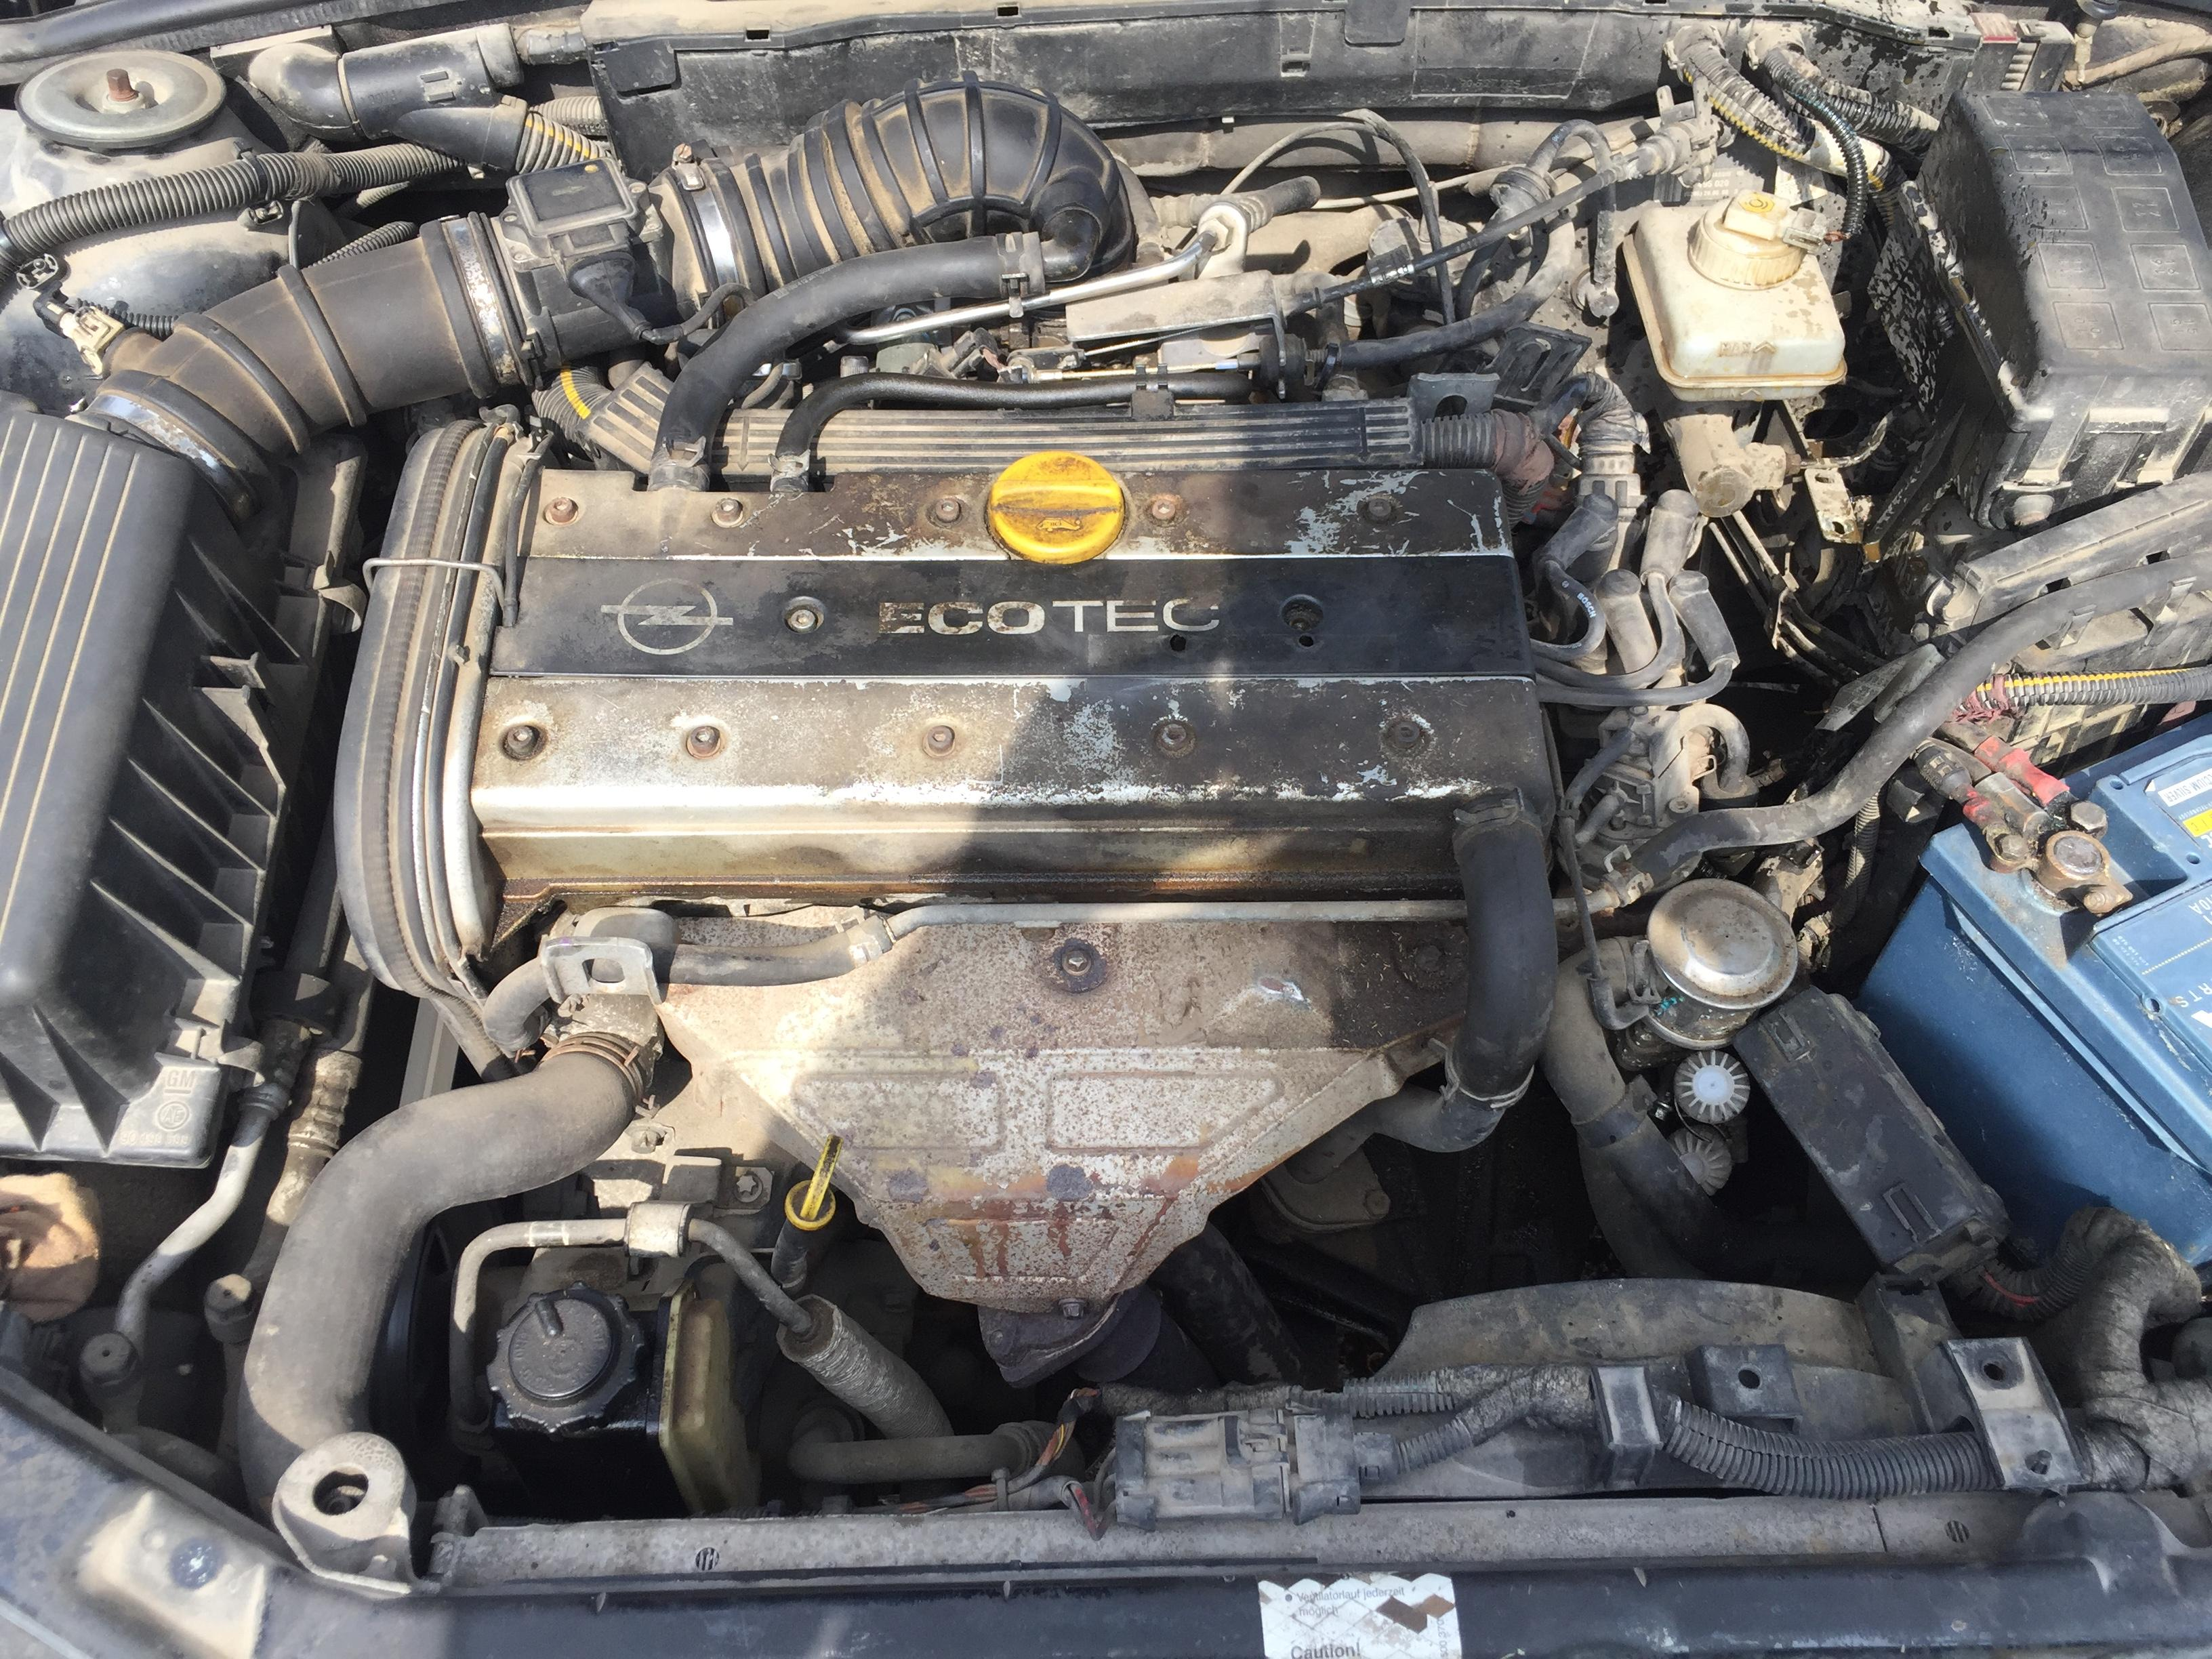 F18 Gearbox Opel Vectra 1998 18l 100eur Eis00254670 Used Parts Shop Vauxhall B Timing Marks Foto 2 199509 200009 Petrol 18